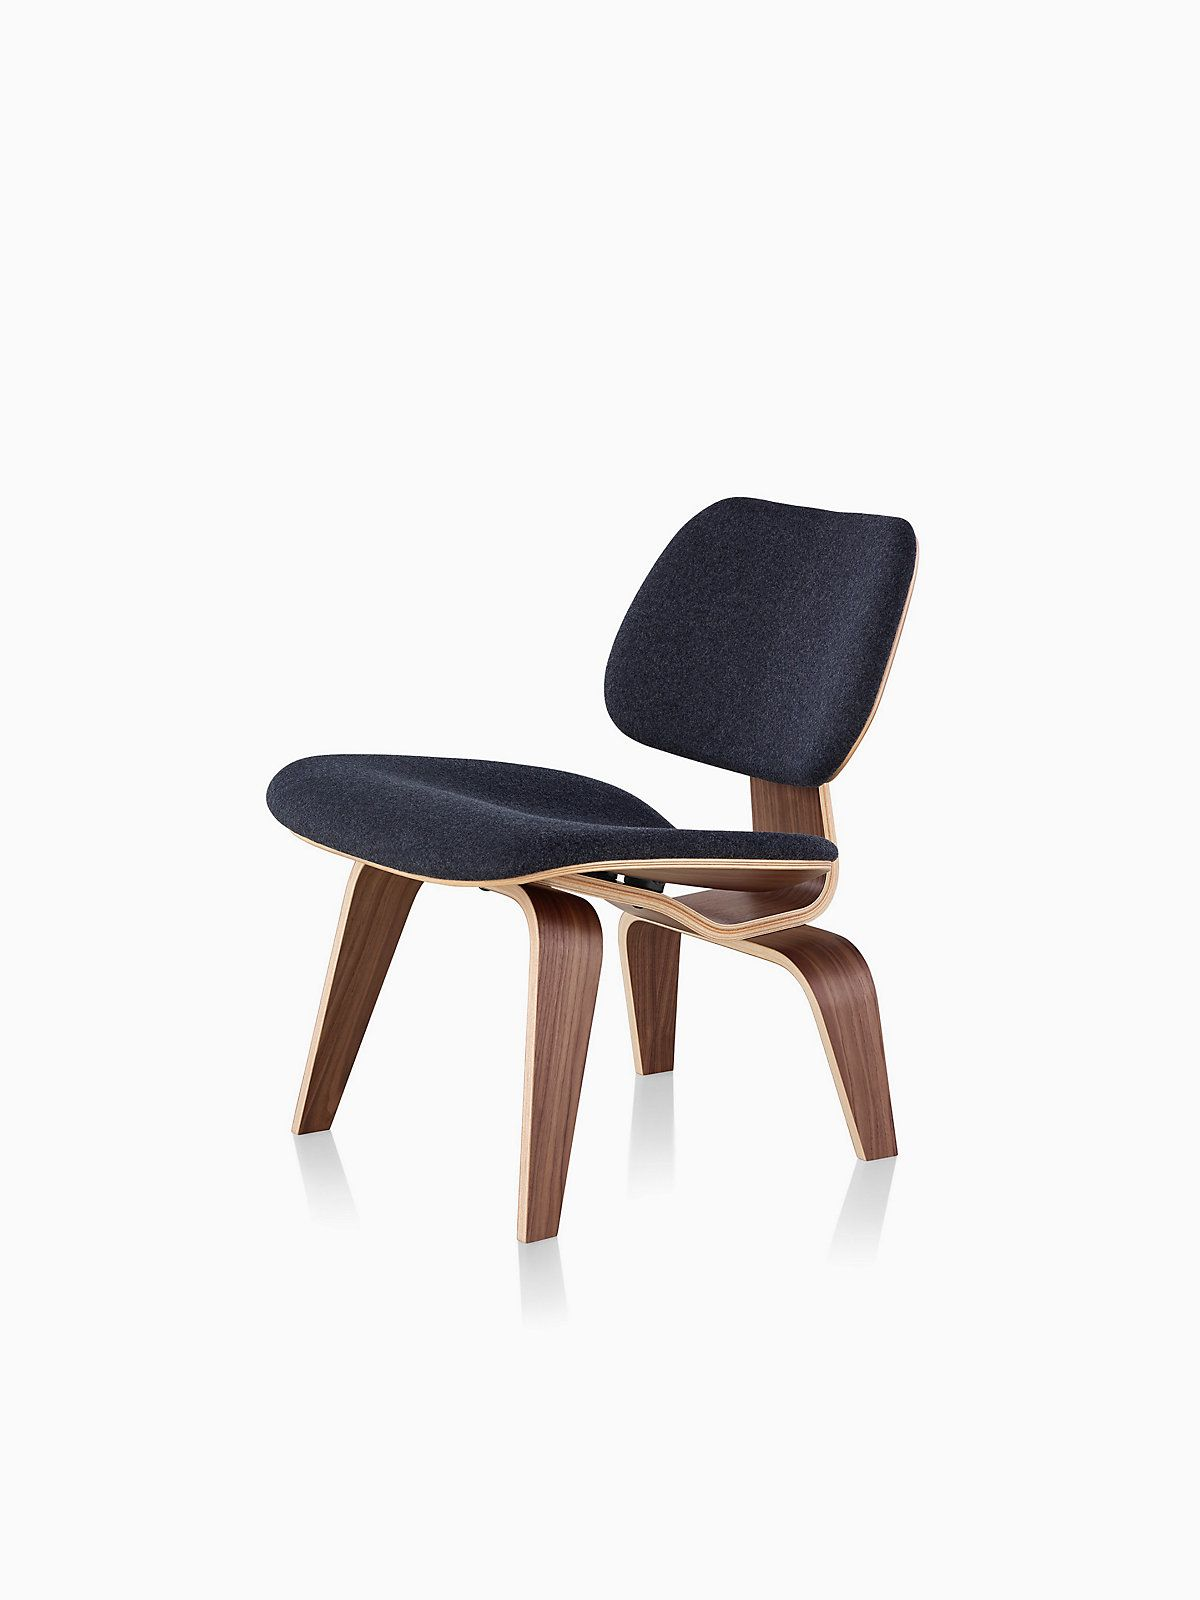 Eames upholstered molded plywood lounge chair lcw